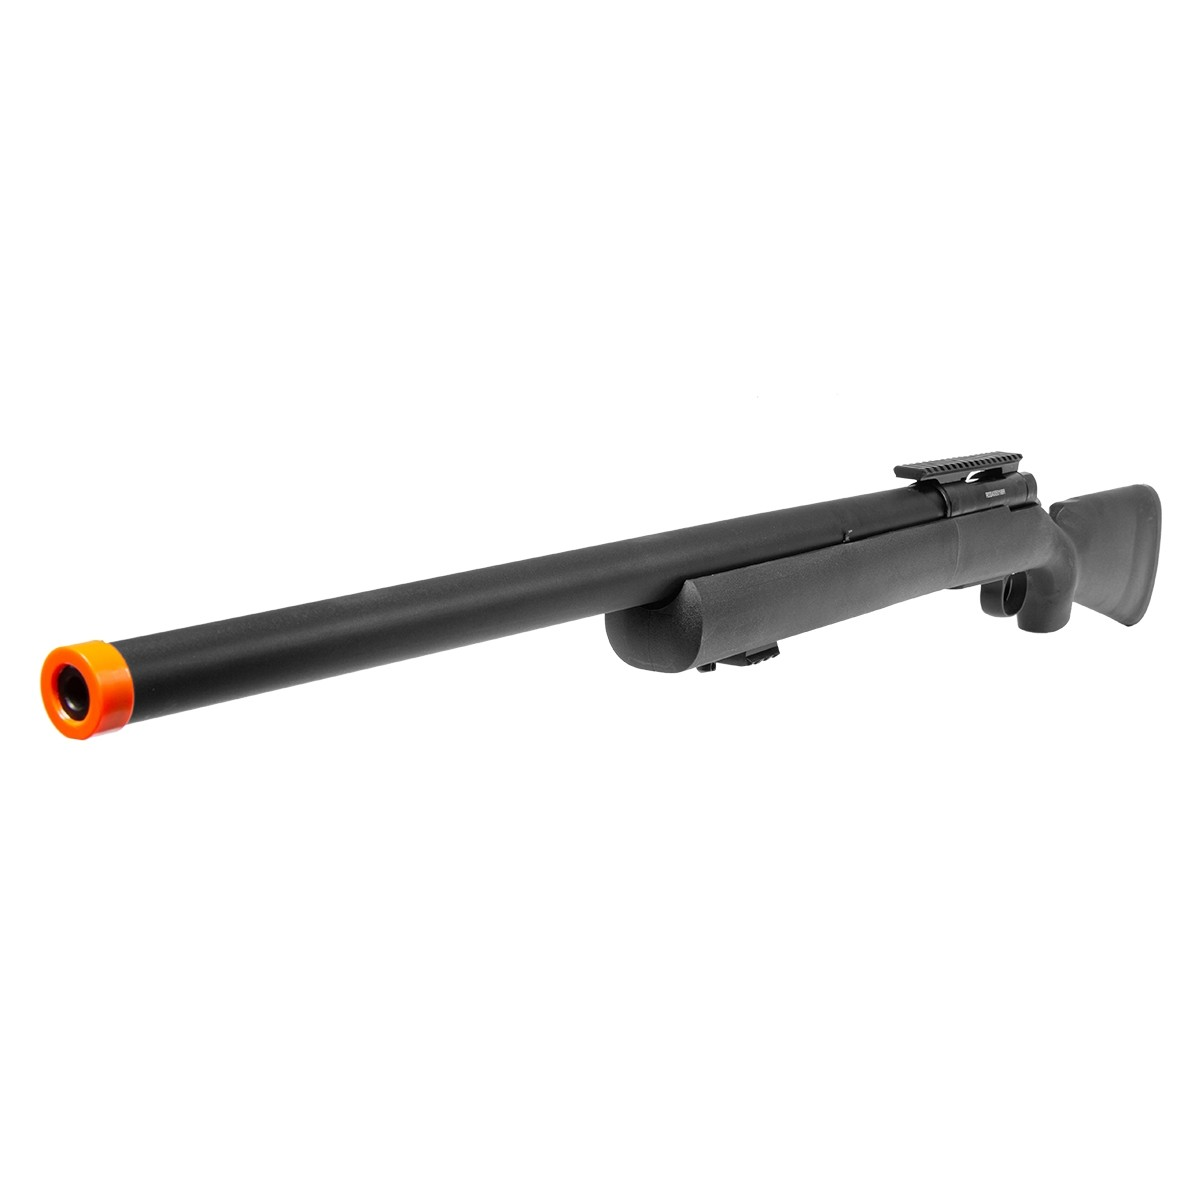 Rifle Sniper Airsoft M24 Storm Mola 6mm